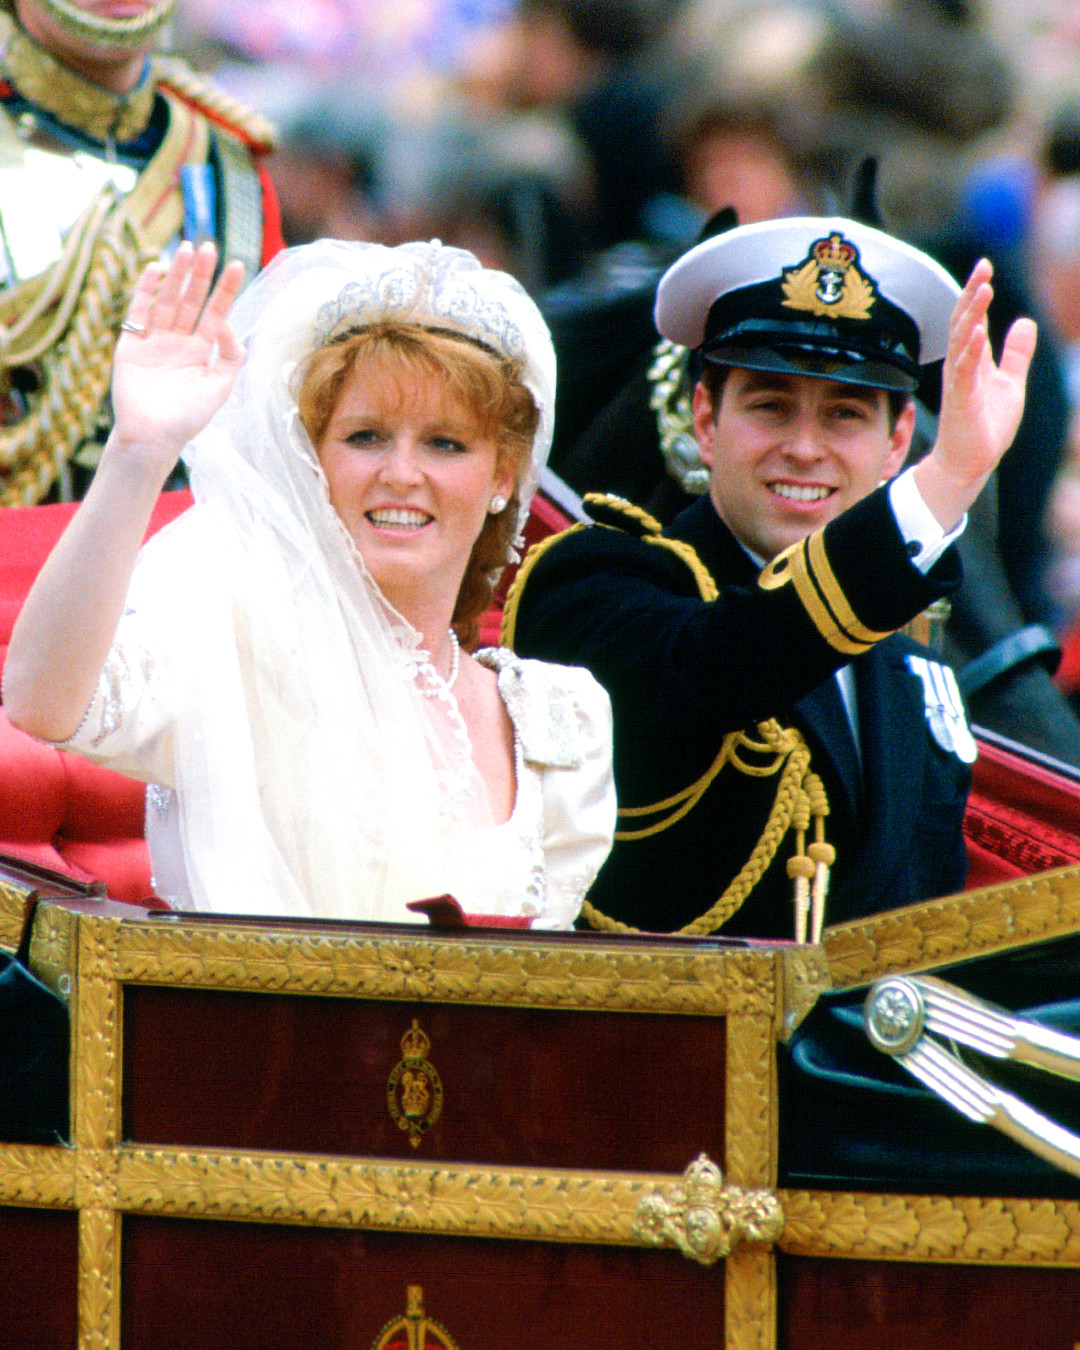 ESC: The Duke and Duchess of York